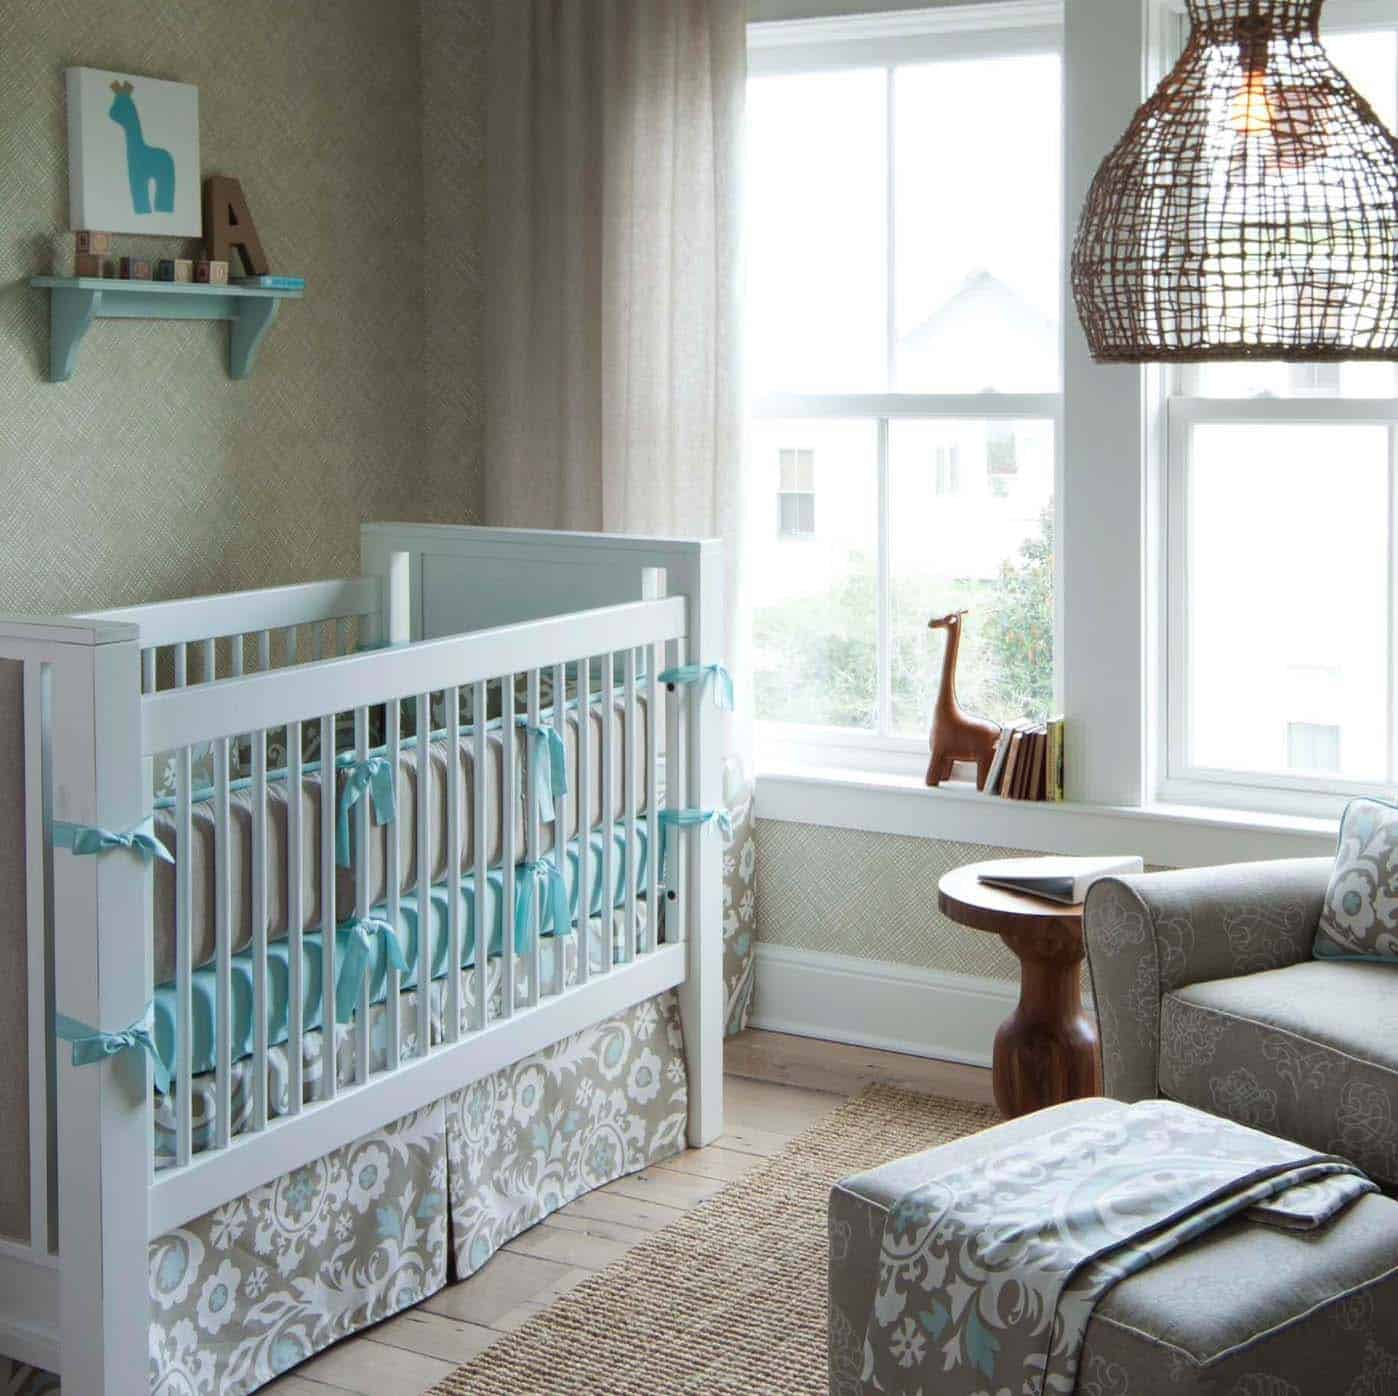 Stylish Nursery Decorating Ideas-31-1 Kindesign